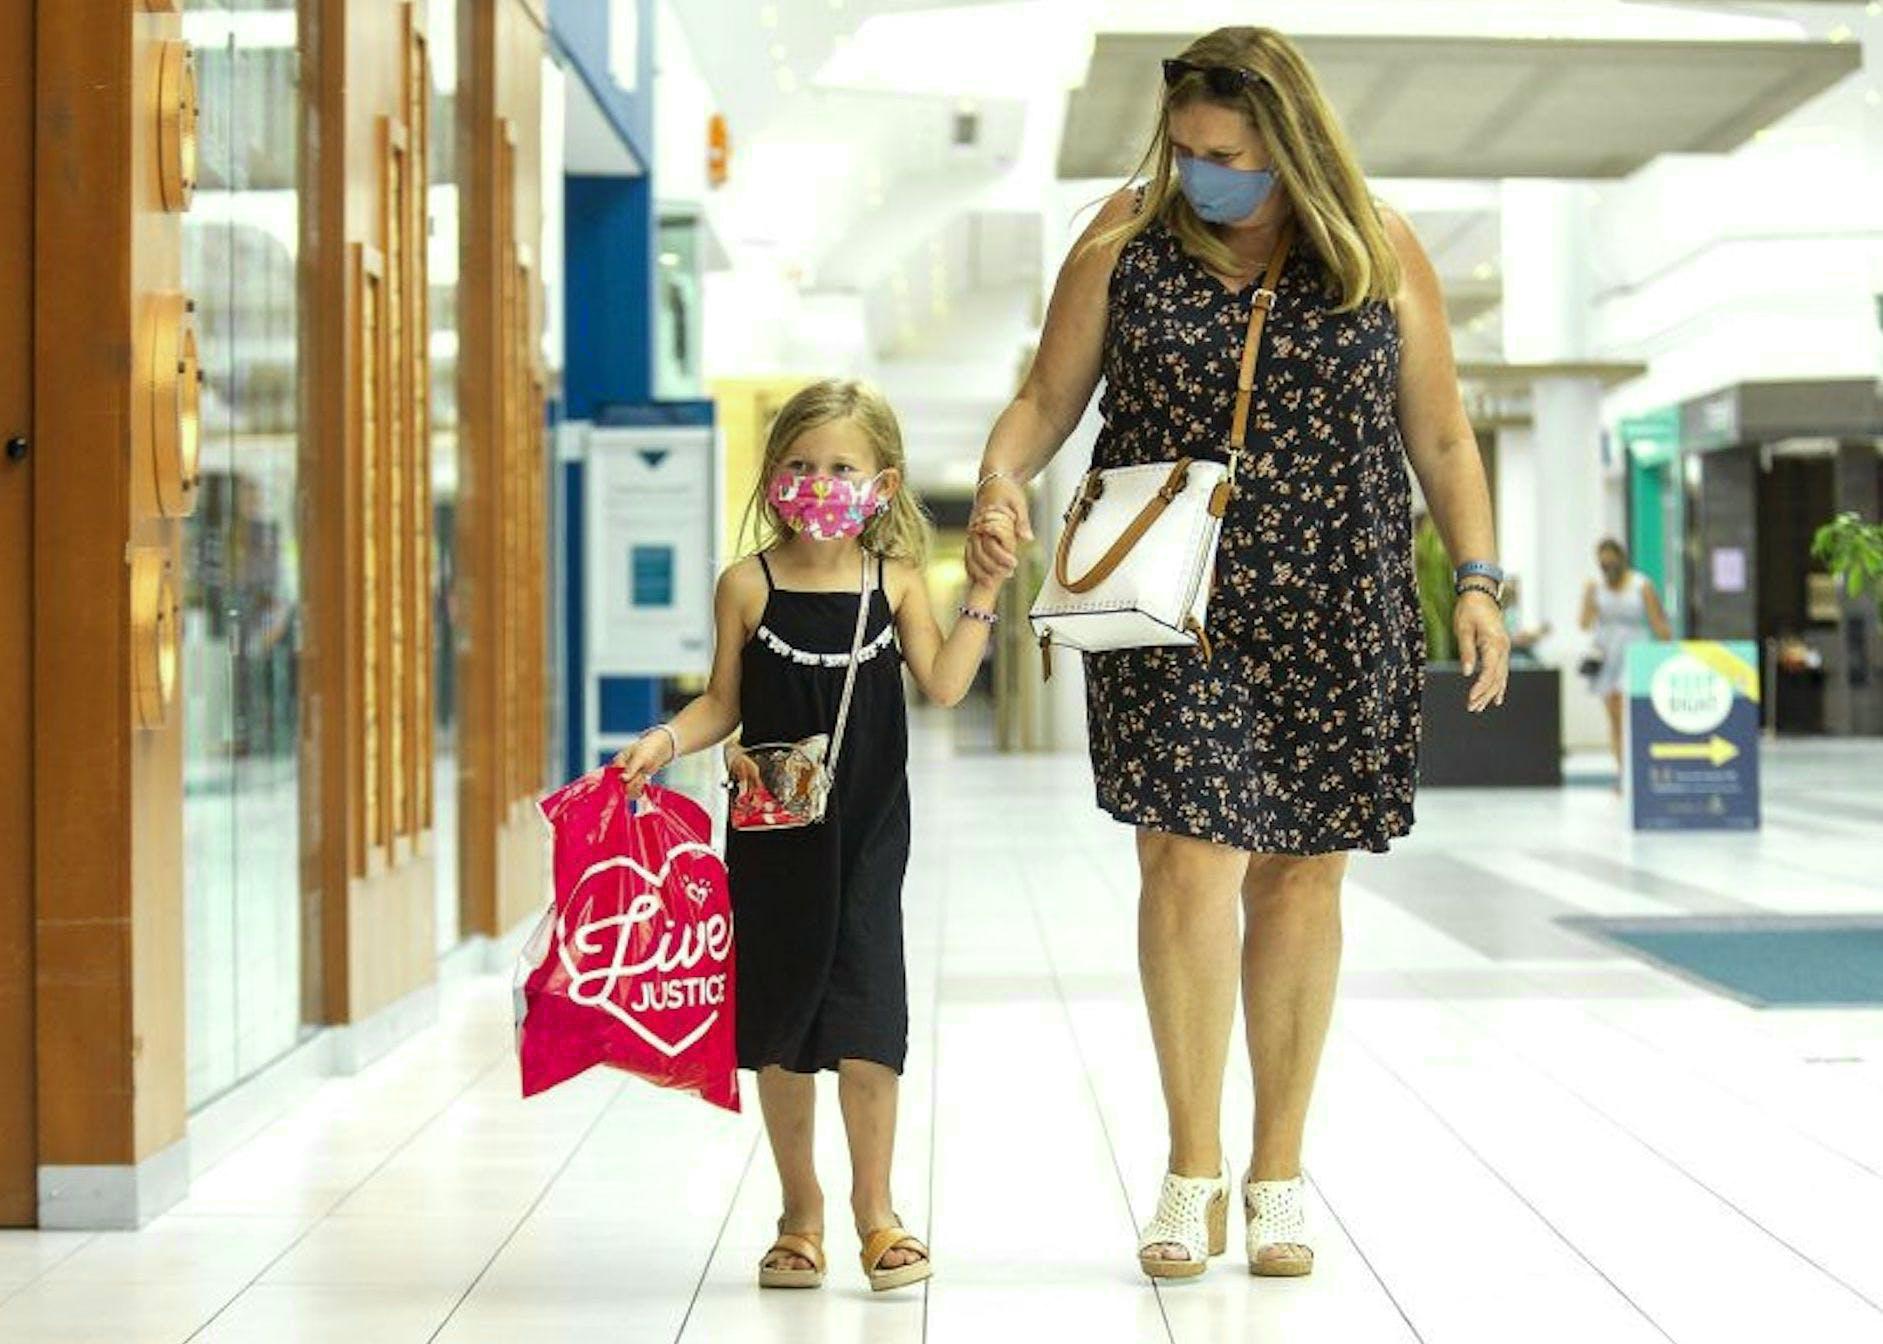 In this file photo from earlier this month, a woman and her daughter wear facemasks as they stroll through in a London, Ont., shopping mall. Beginning next Monday, Newfoundland and Labrador will join many other jurisdictions across Canada in making non-medical facemasks mandatory in public spaces.